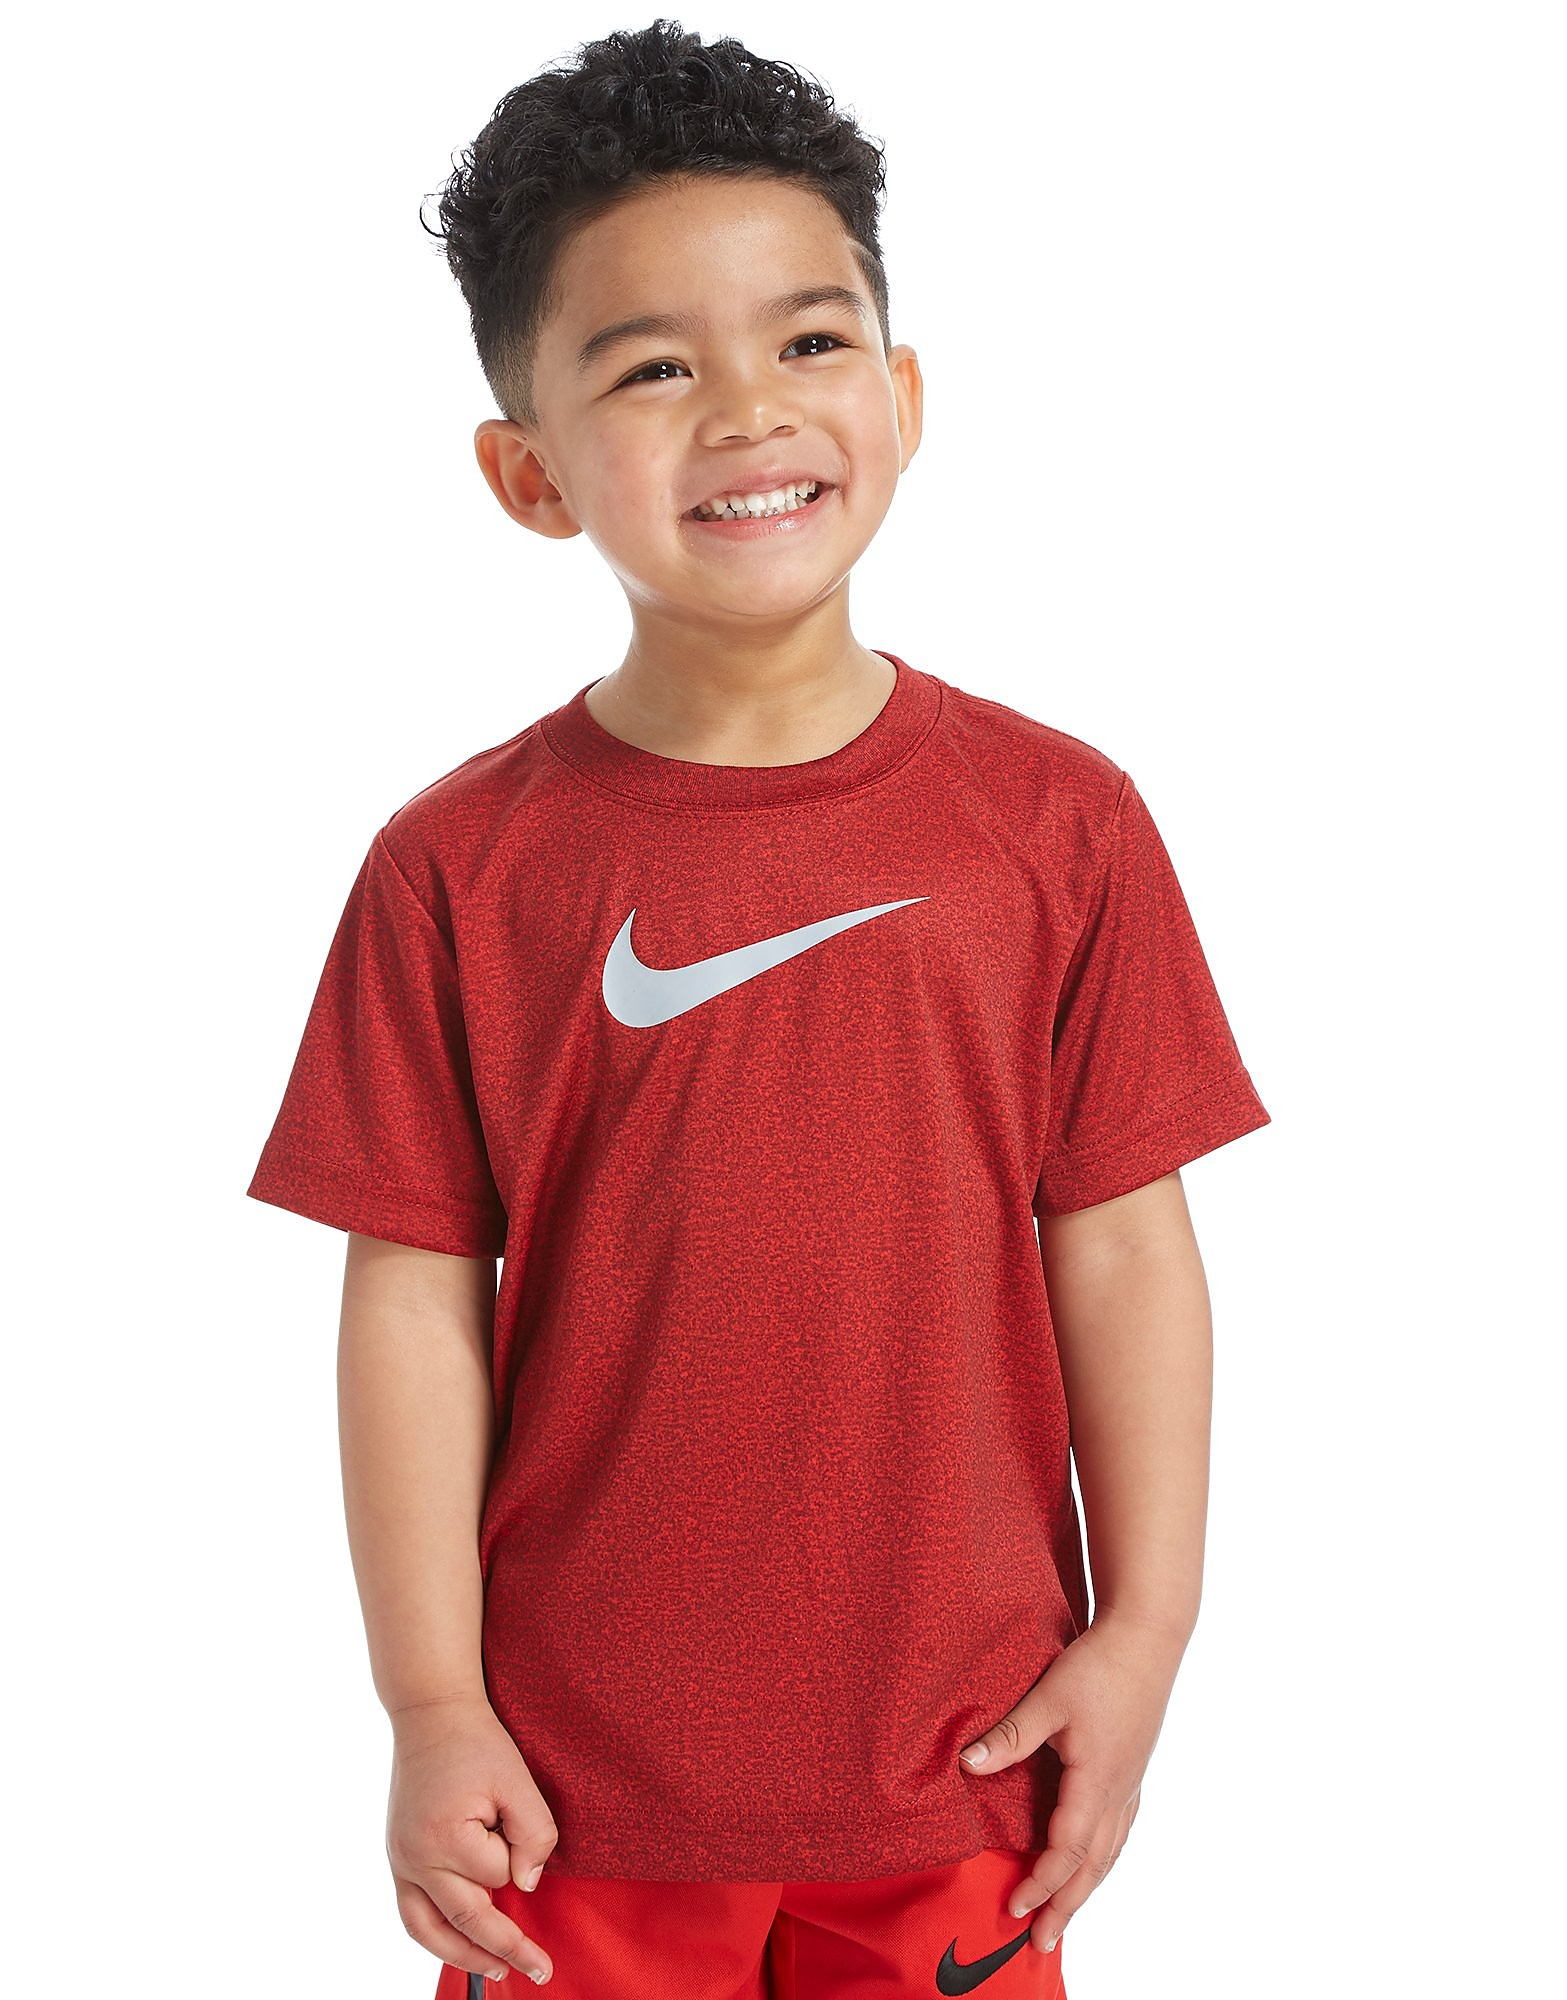 Nike Dri-FIT Short Sleeve T-Shirt Children